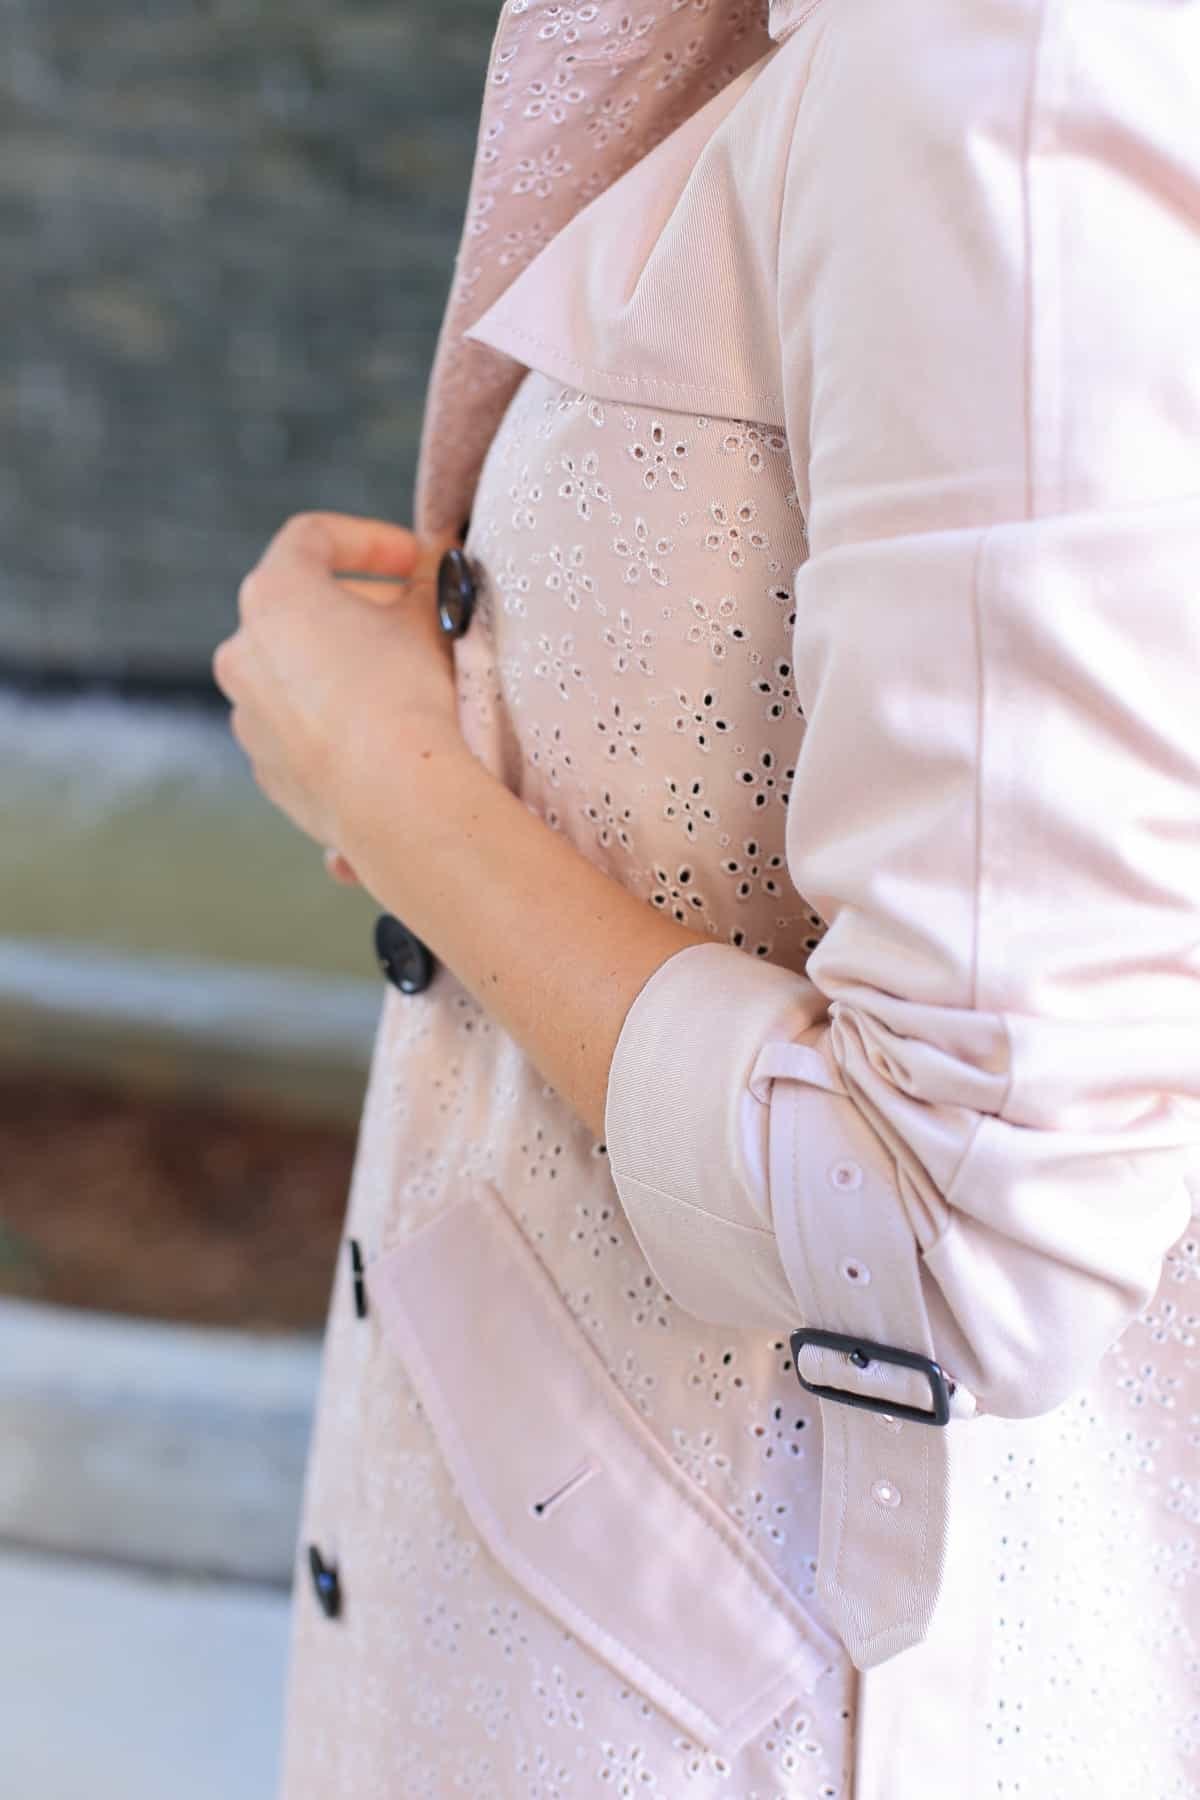 Coach eyelet trench coat, how to style a trench coat for spring - My Style Vita - @mystylevita - 10